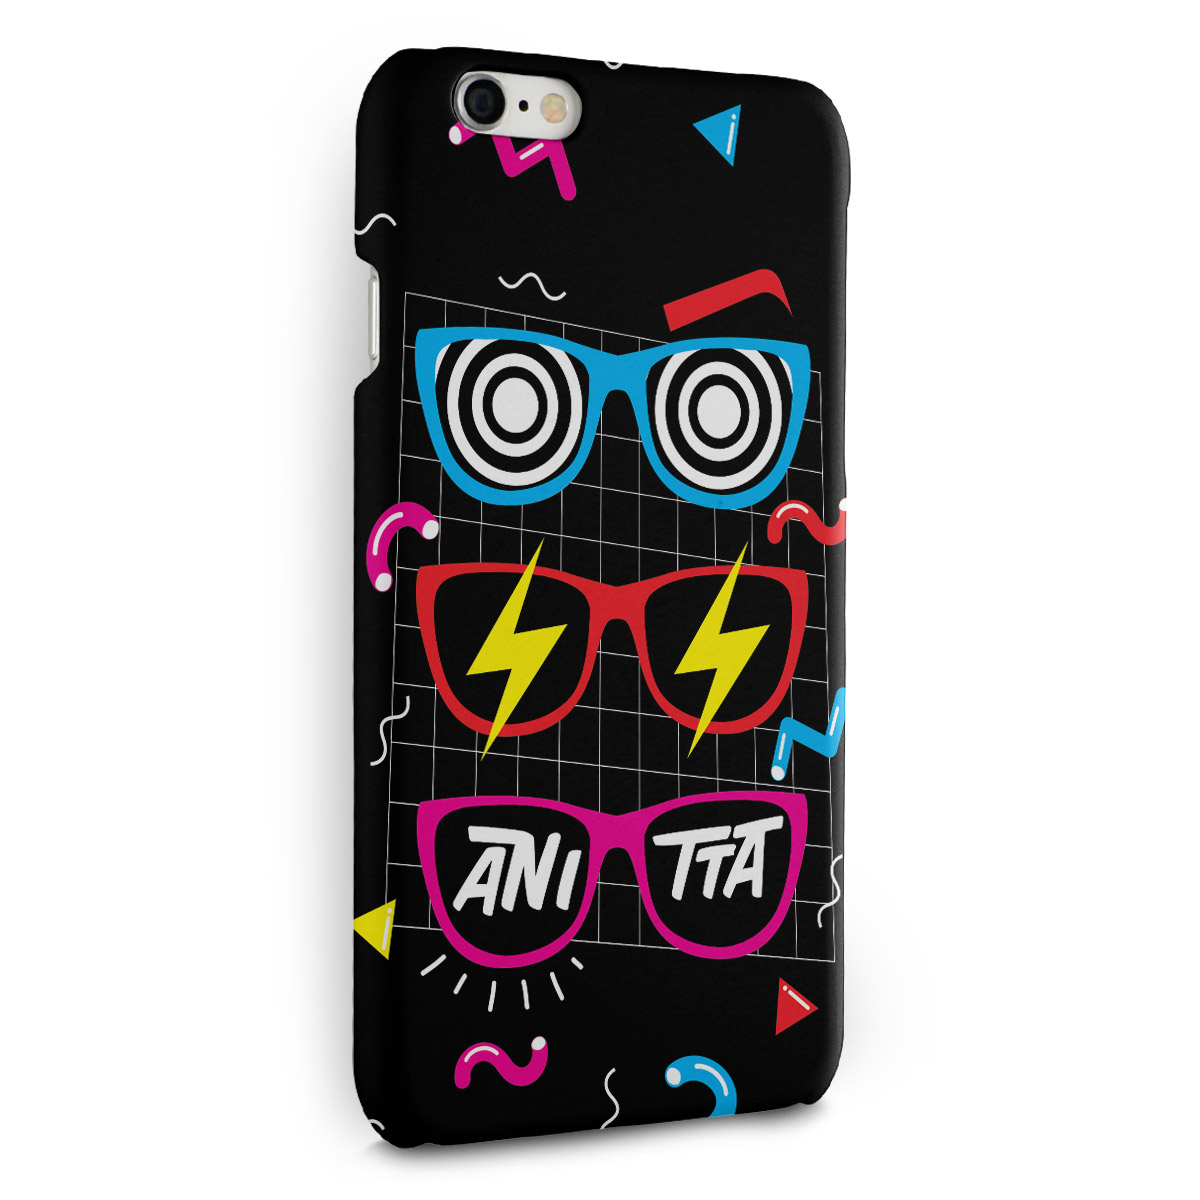 Capa para iPhone 6/6S Plus Anitta Glasses